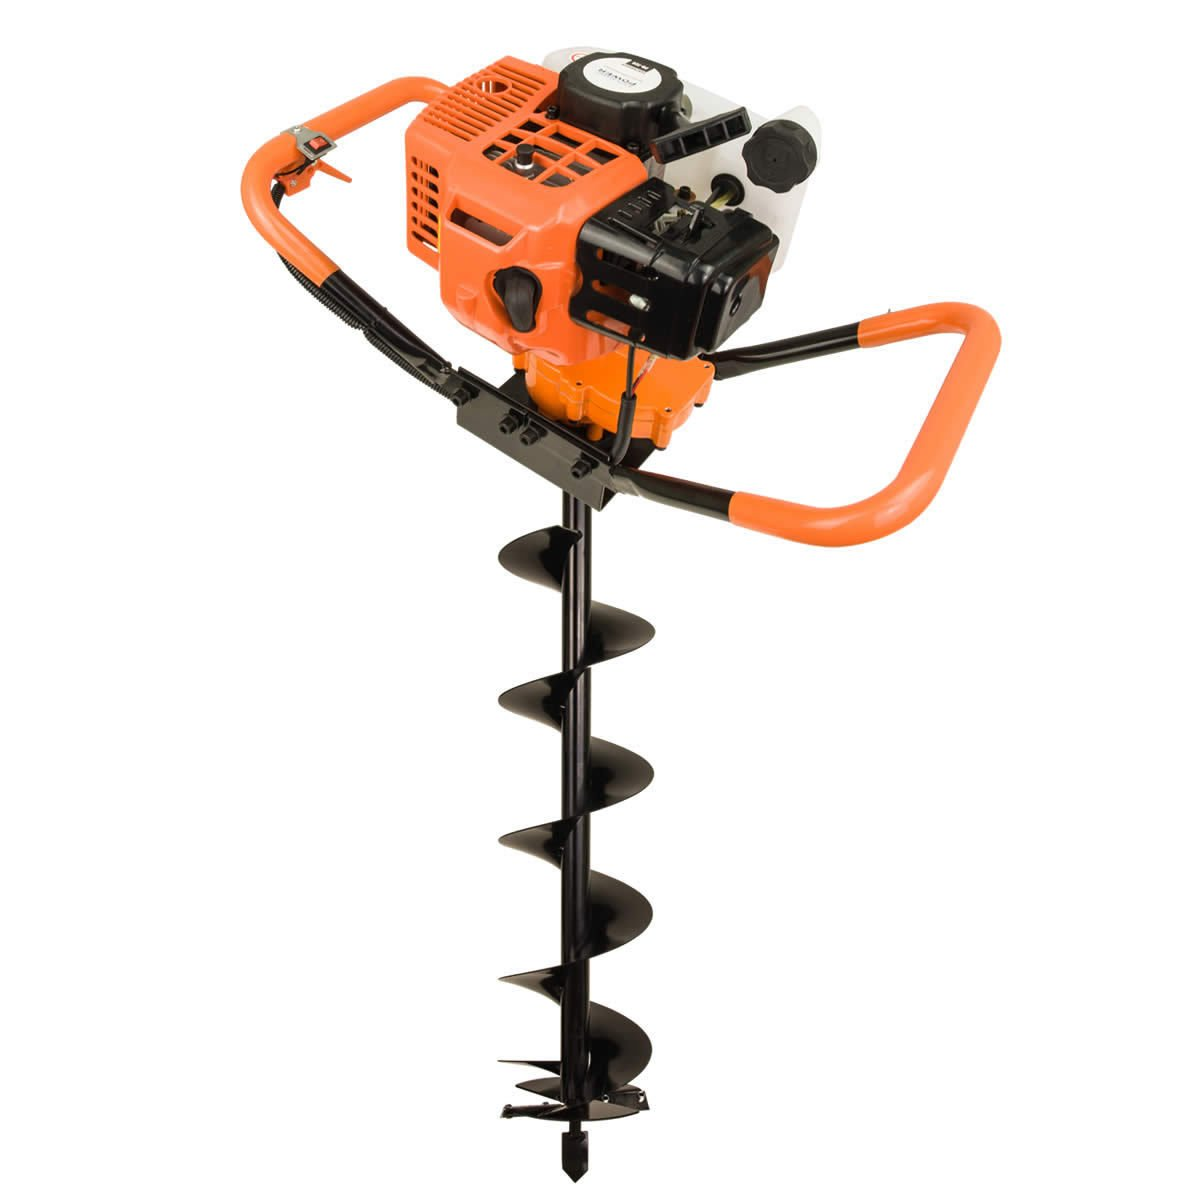 82cc Post Hole Digger Auger Petrol Drill Bit Fence Earth Borer 100 150 200 ultrasharp blades by Horti Power (Image #2)